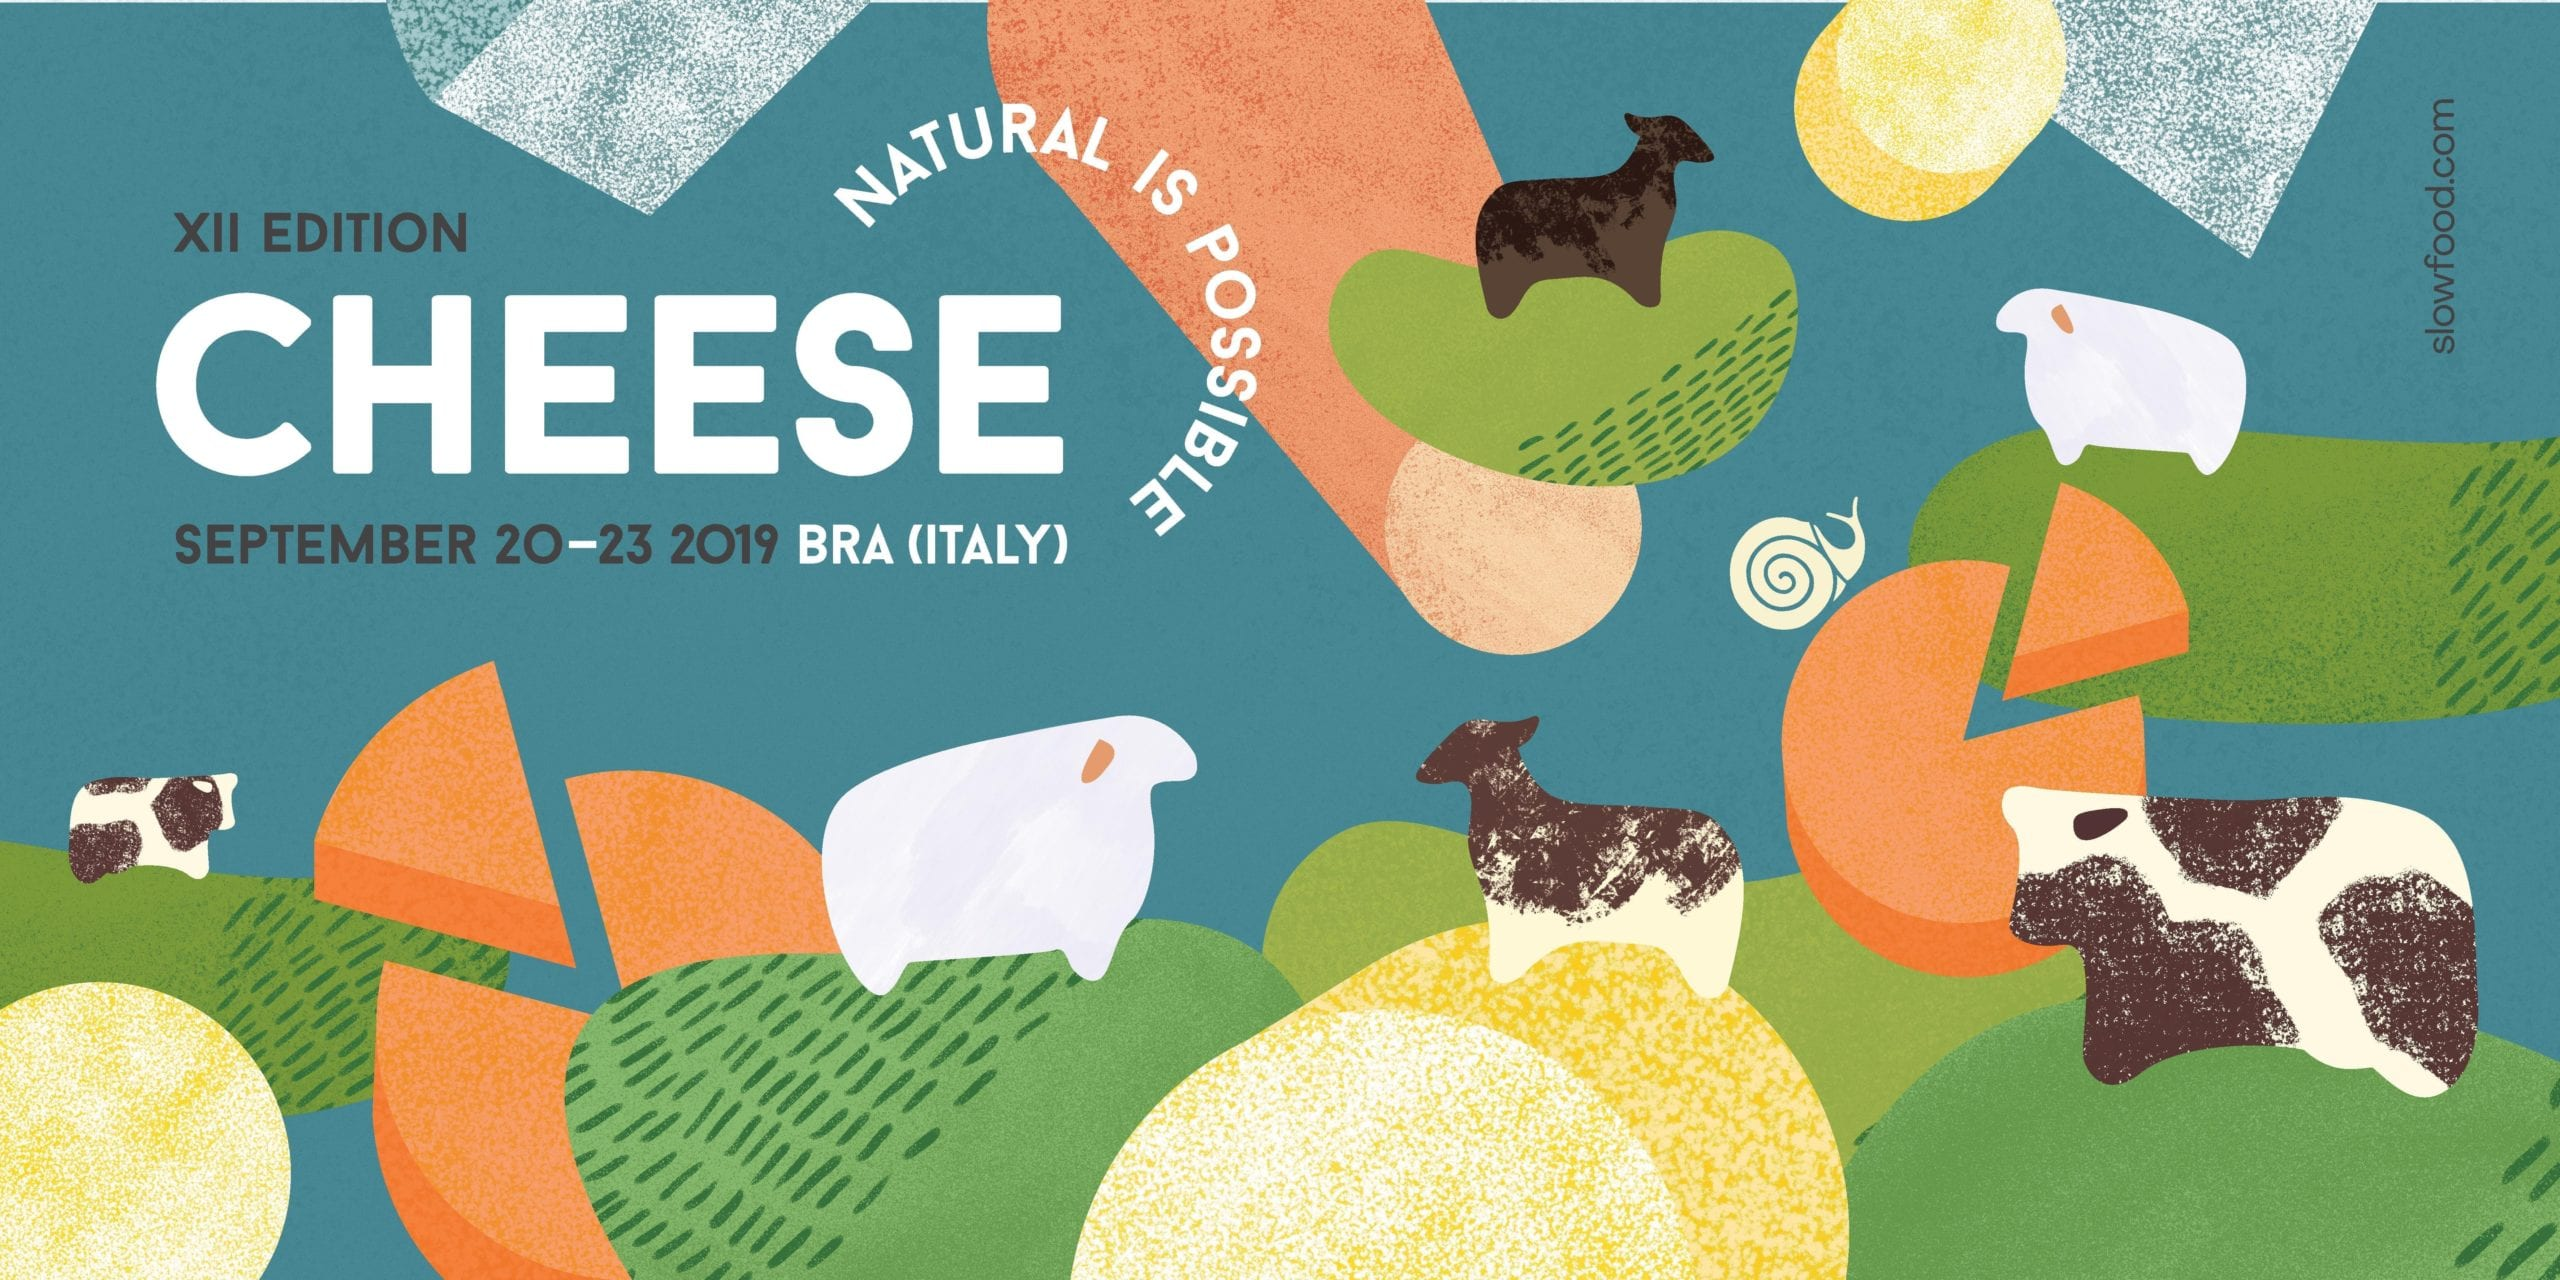 poster with cheese and farm animals